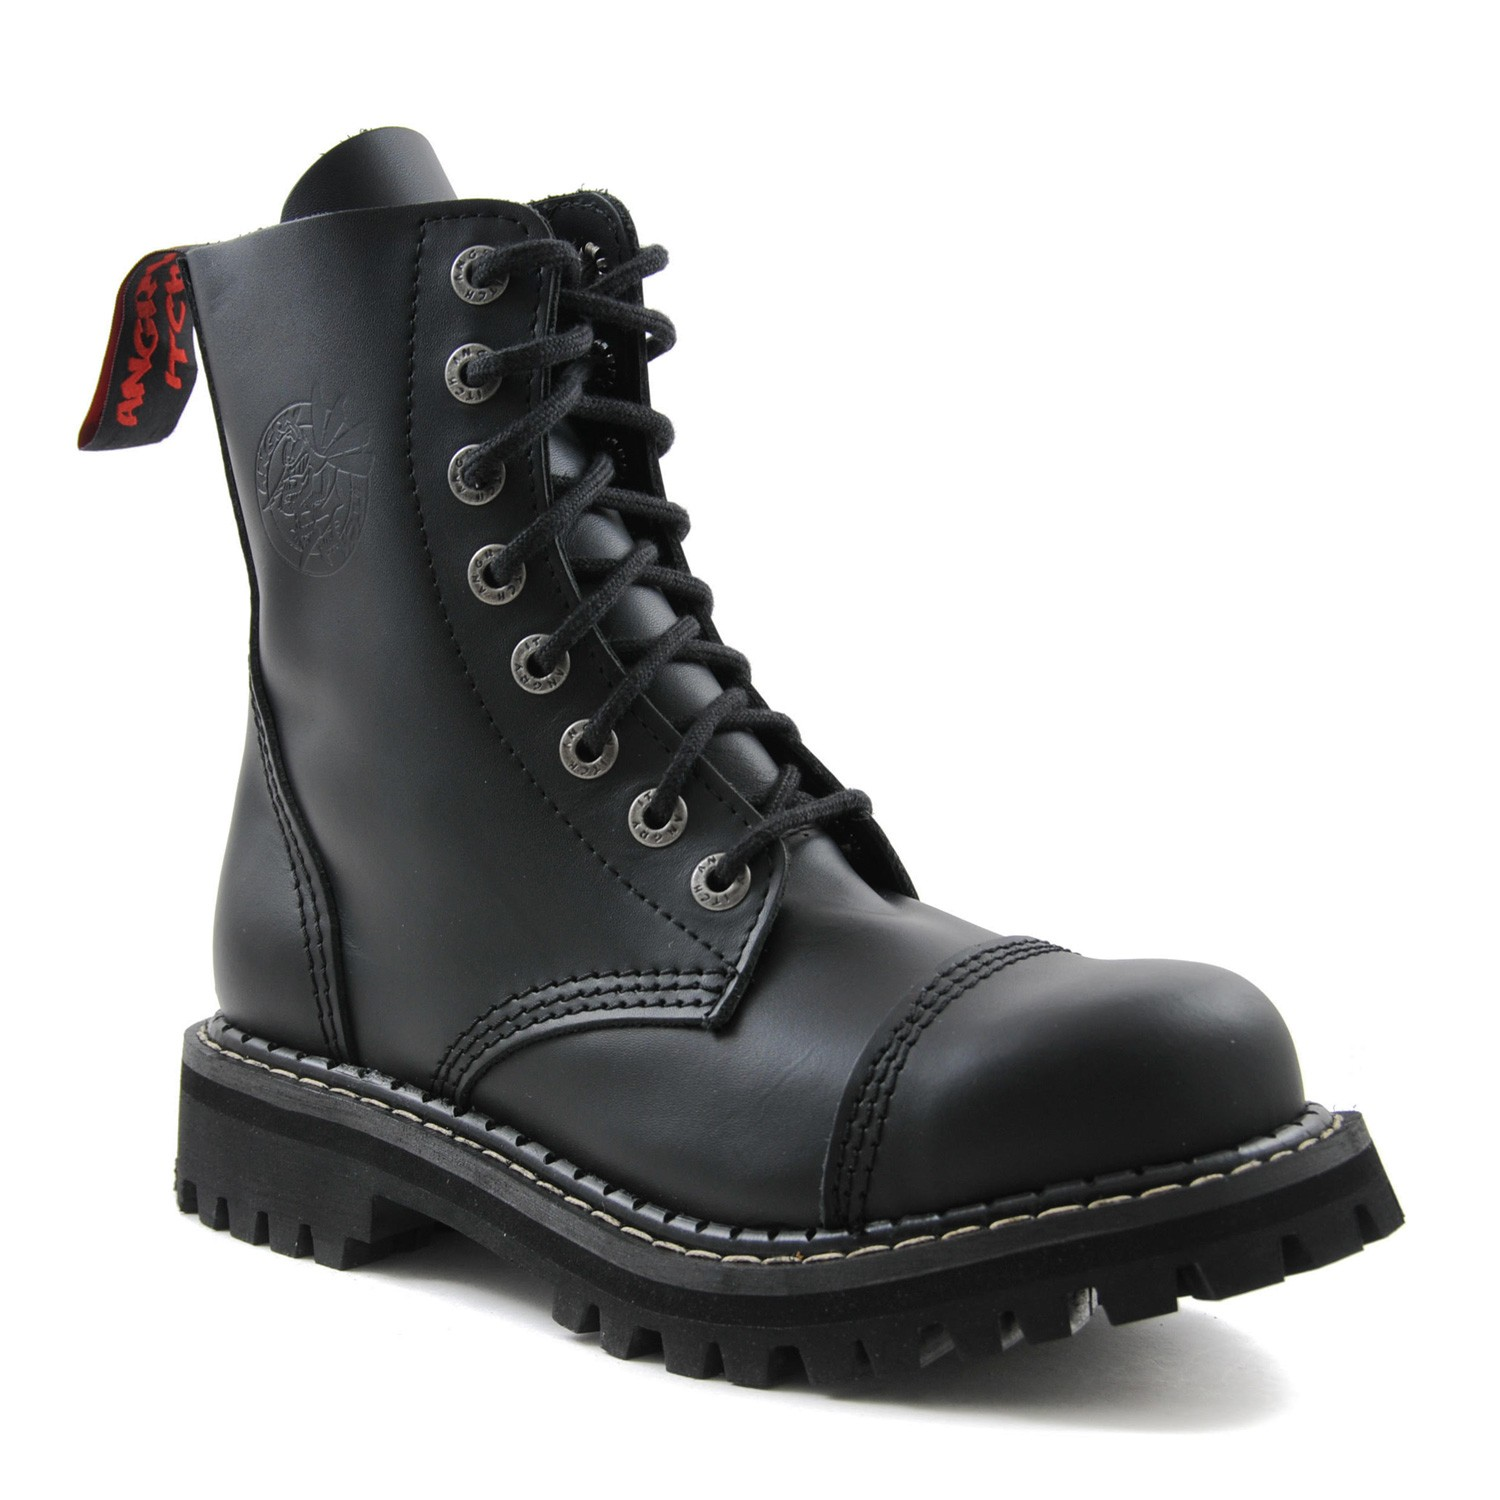 Angry Itch - 8-Loch Gothic Punk Army Ranger Armee schwarze Leder Stiefel mit Stahlkappe 36-48 - Made in EU!